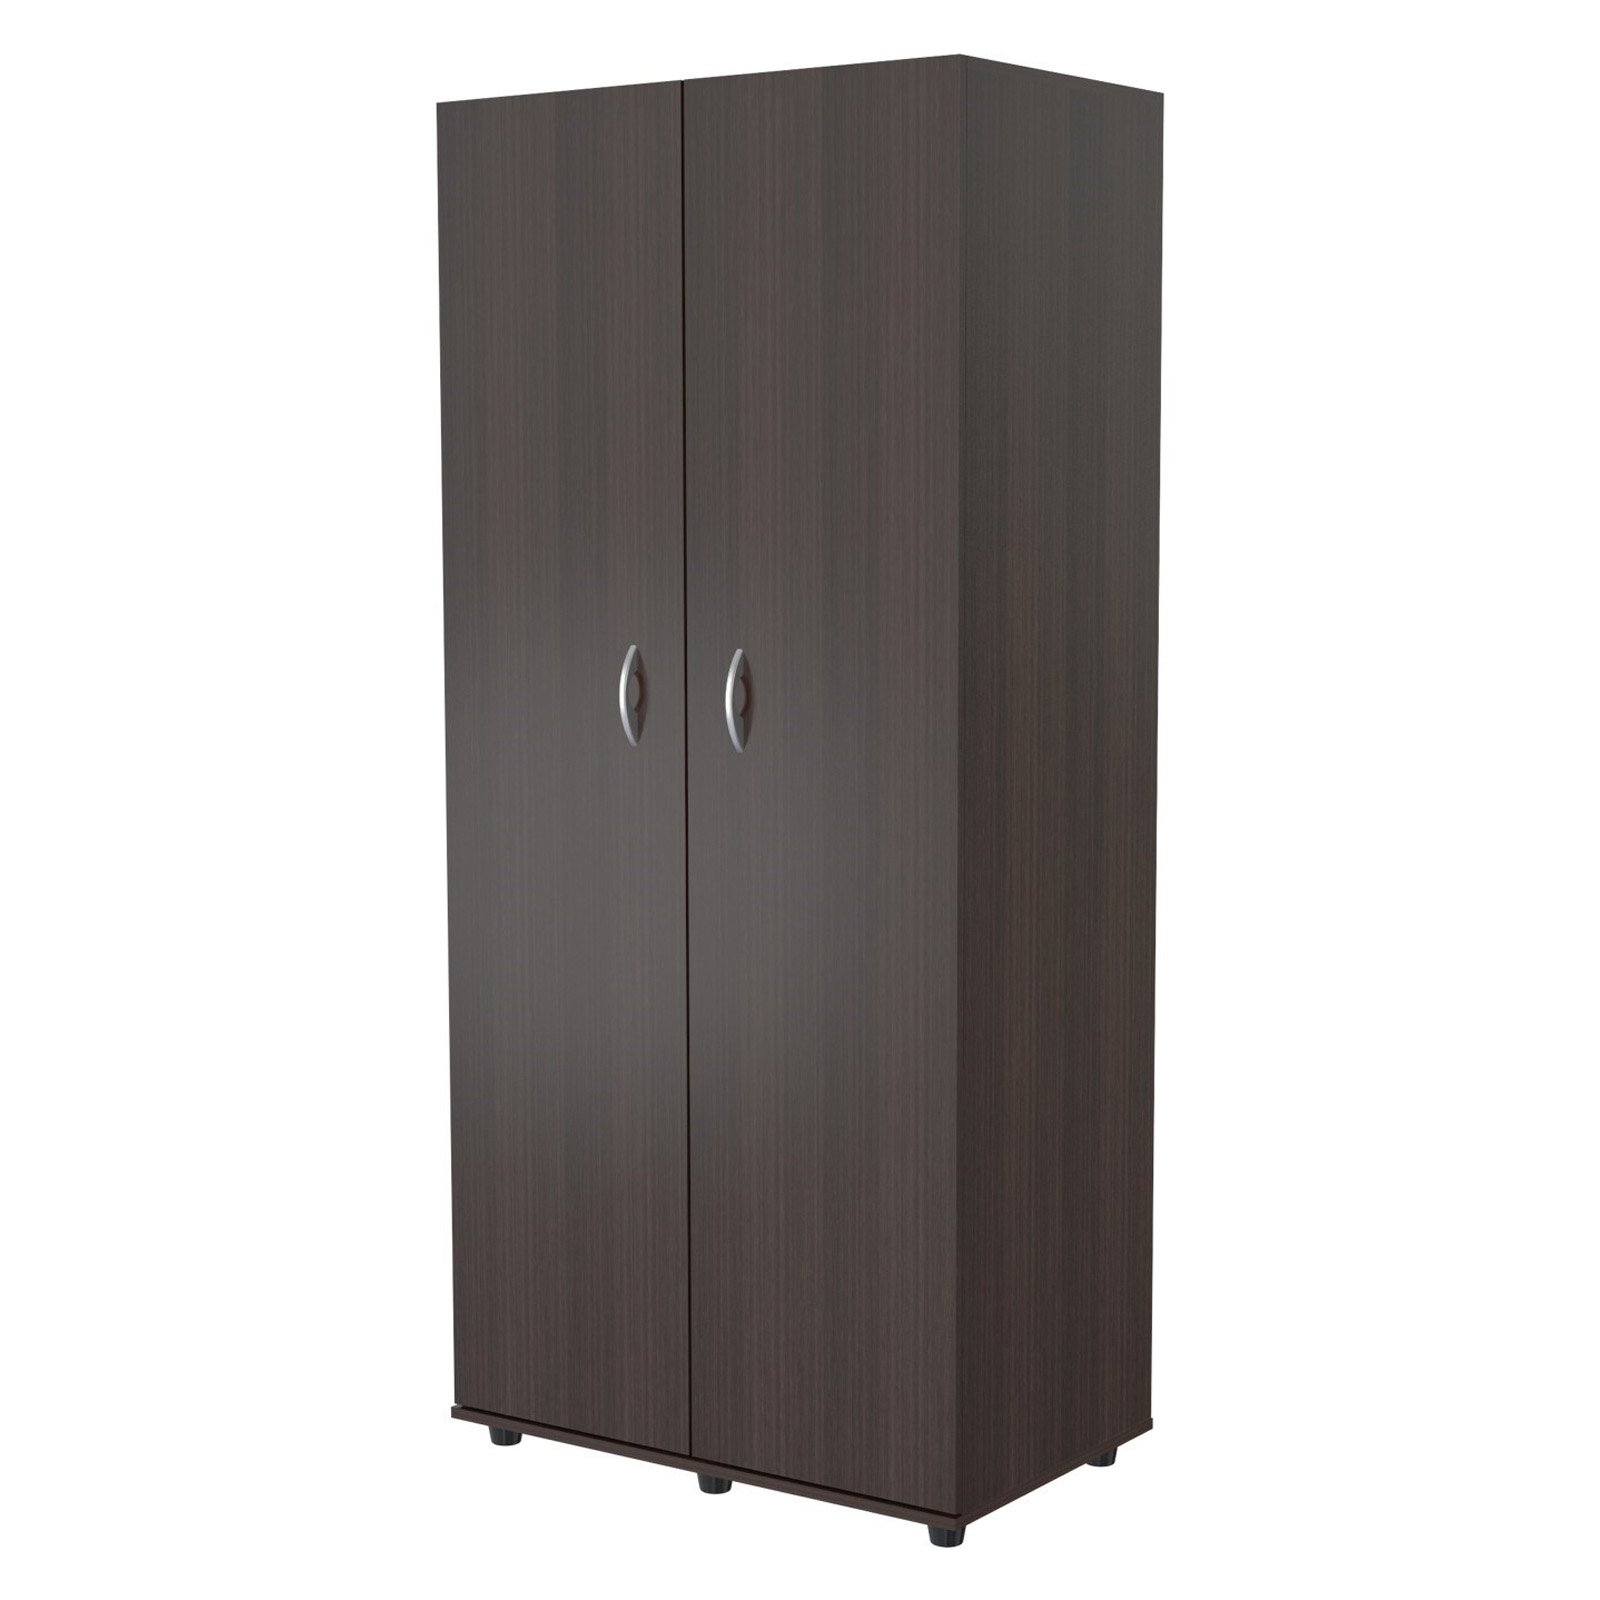 Inval Two Door Wardrobe Armoire, Espresso-Wengue Finish by Inval